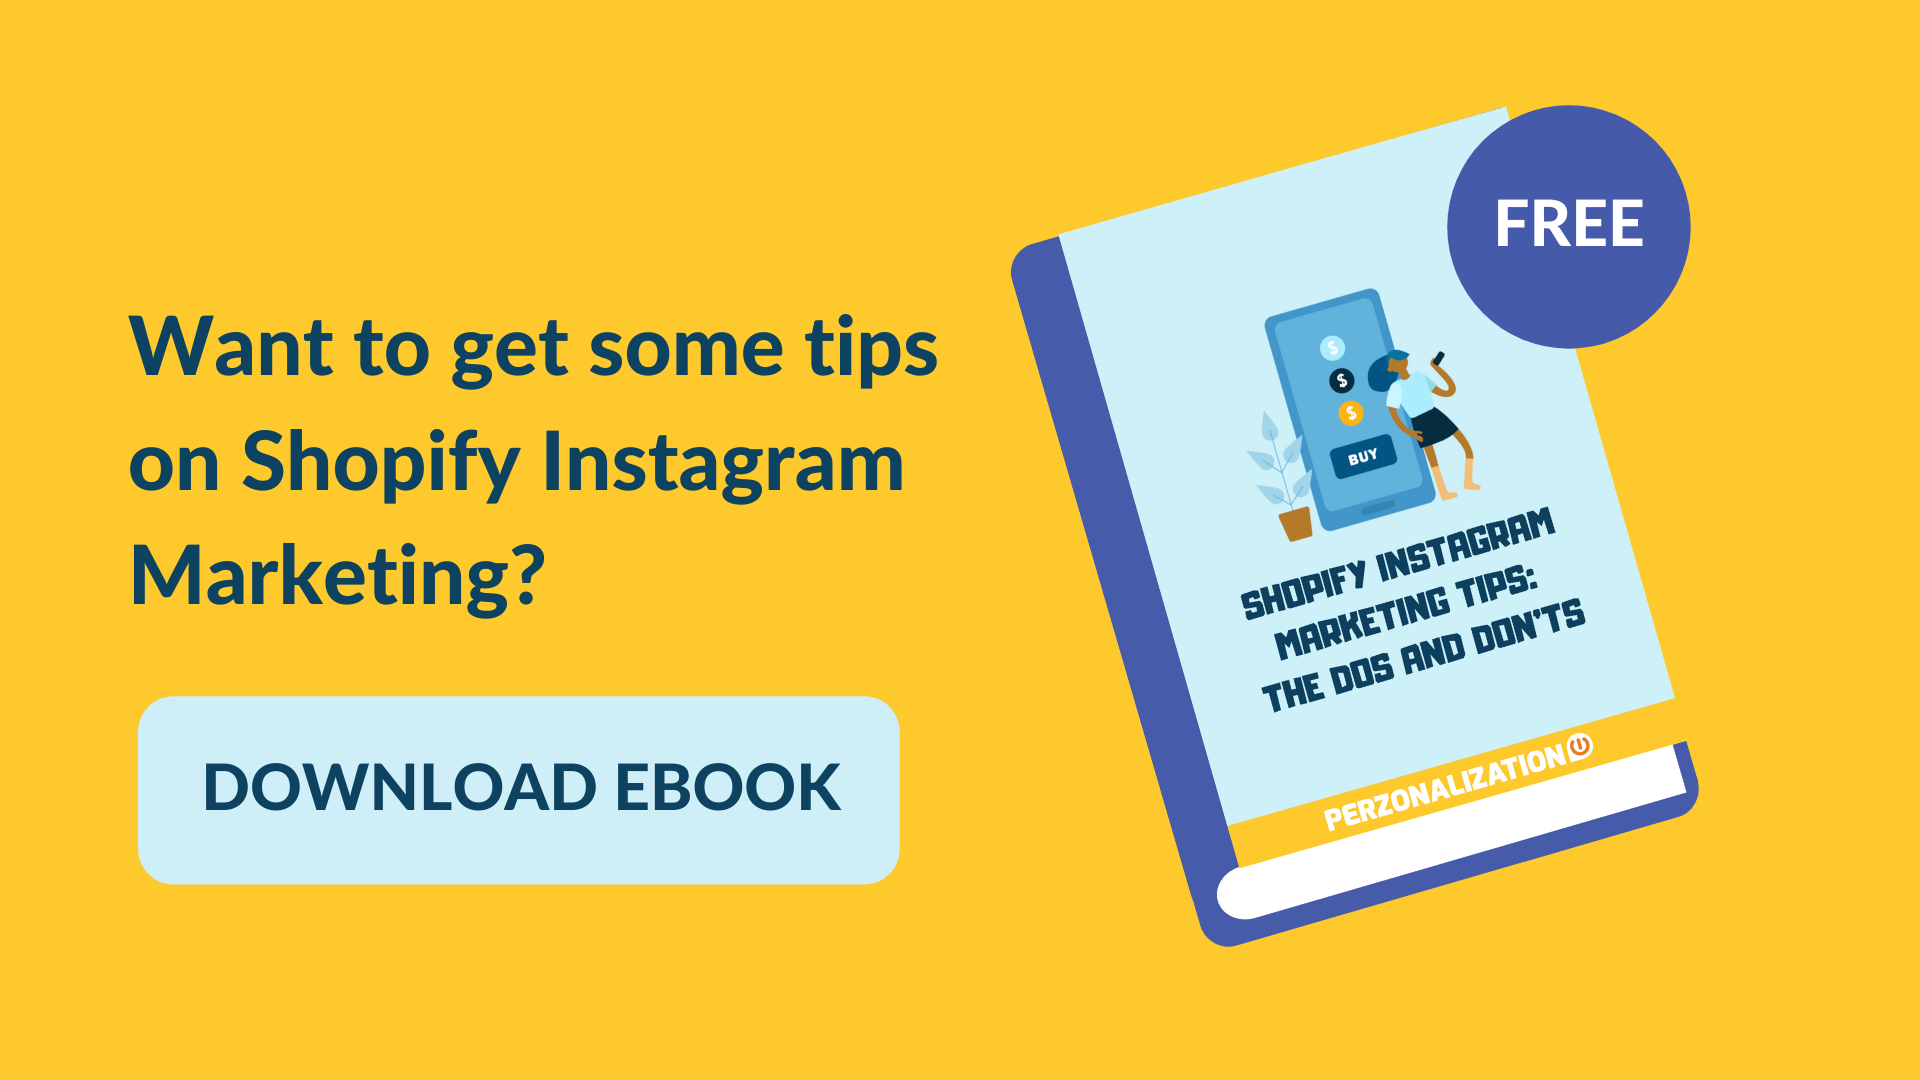 Are you a Shopify merchant? This free ebook lists Shopify Instagram marketing tips that you may find handy for your eCommerce business.